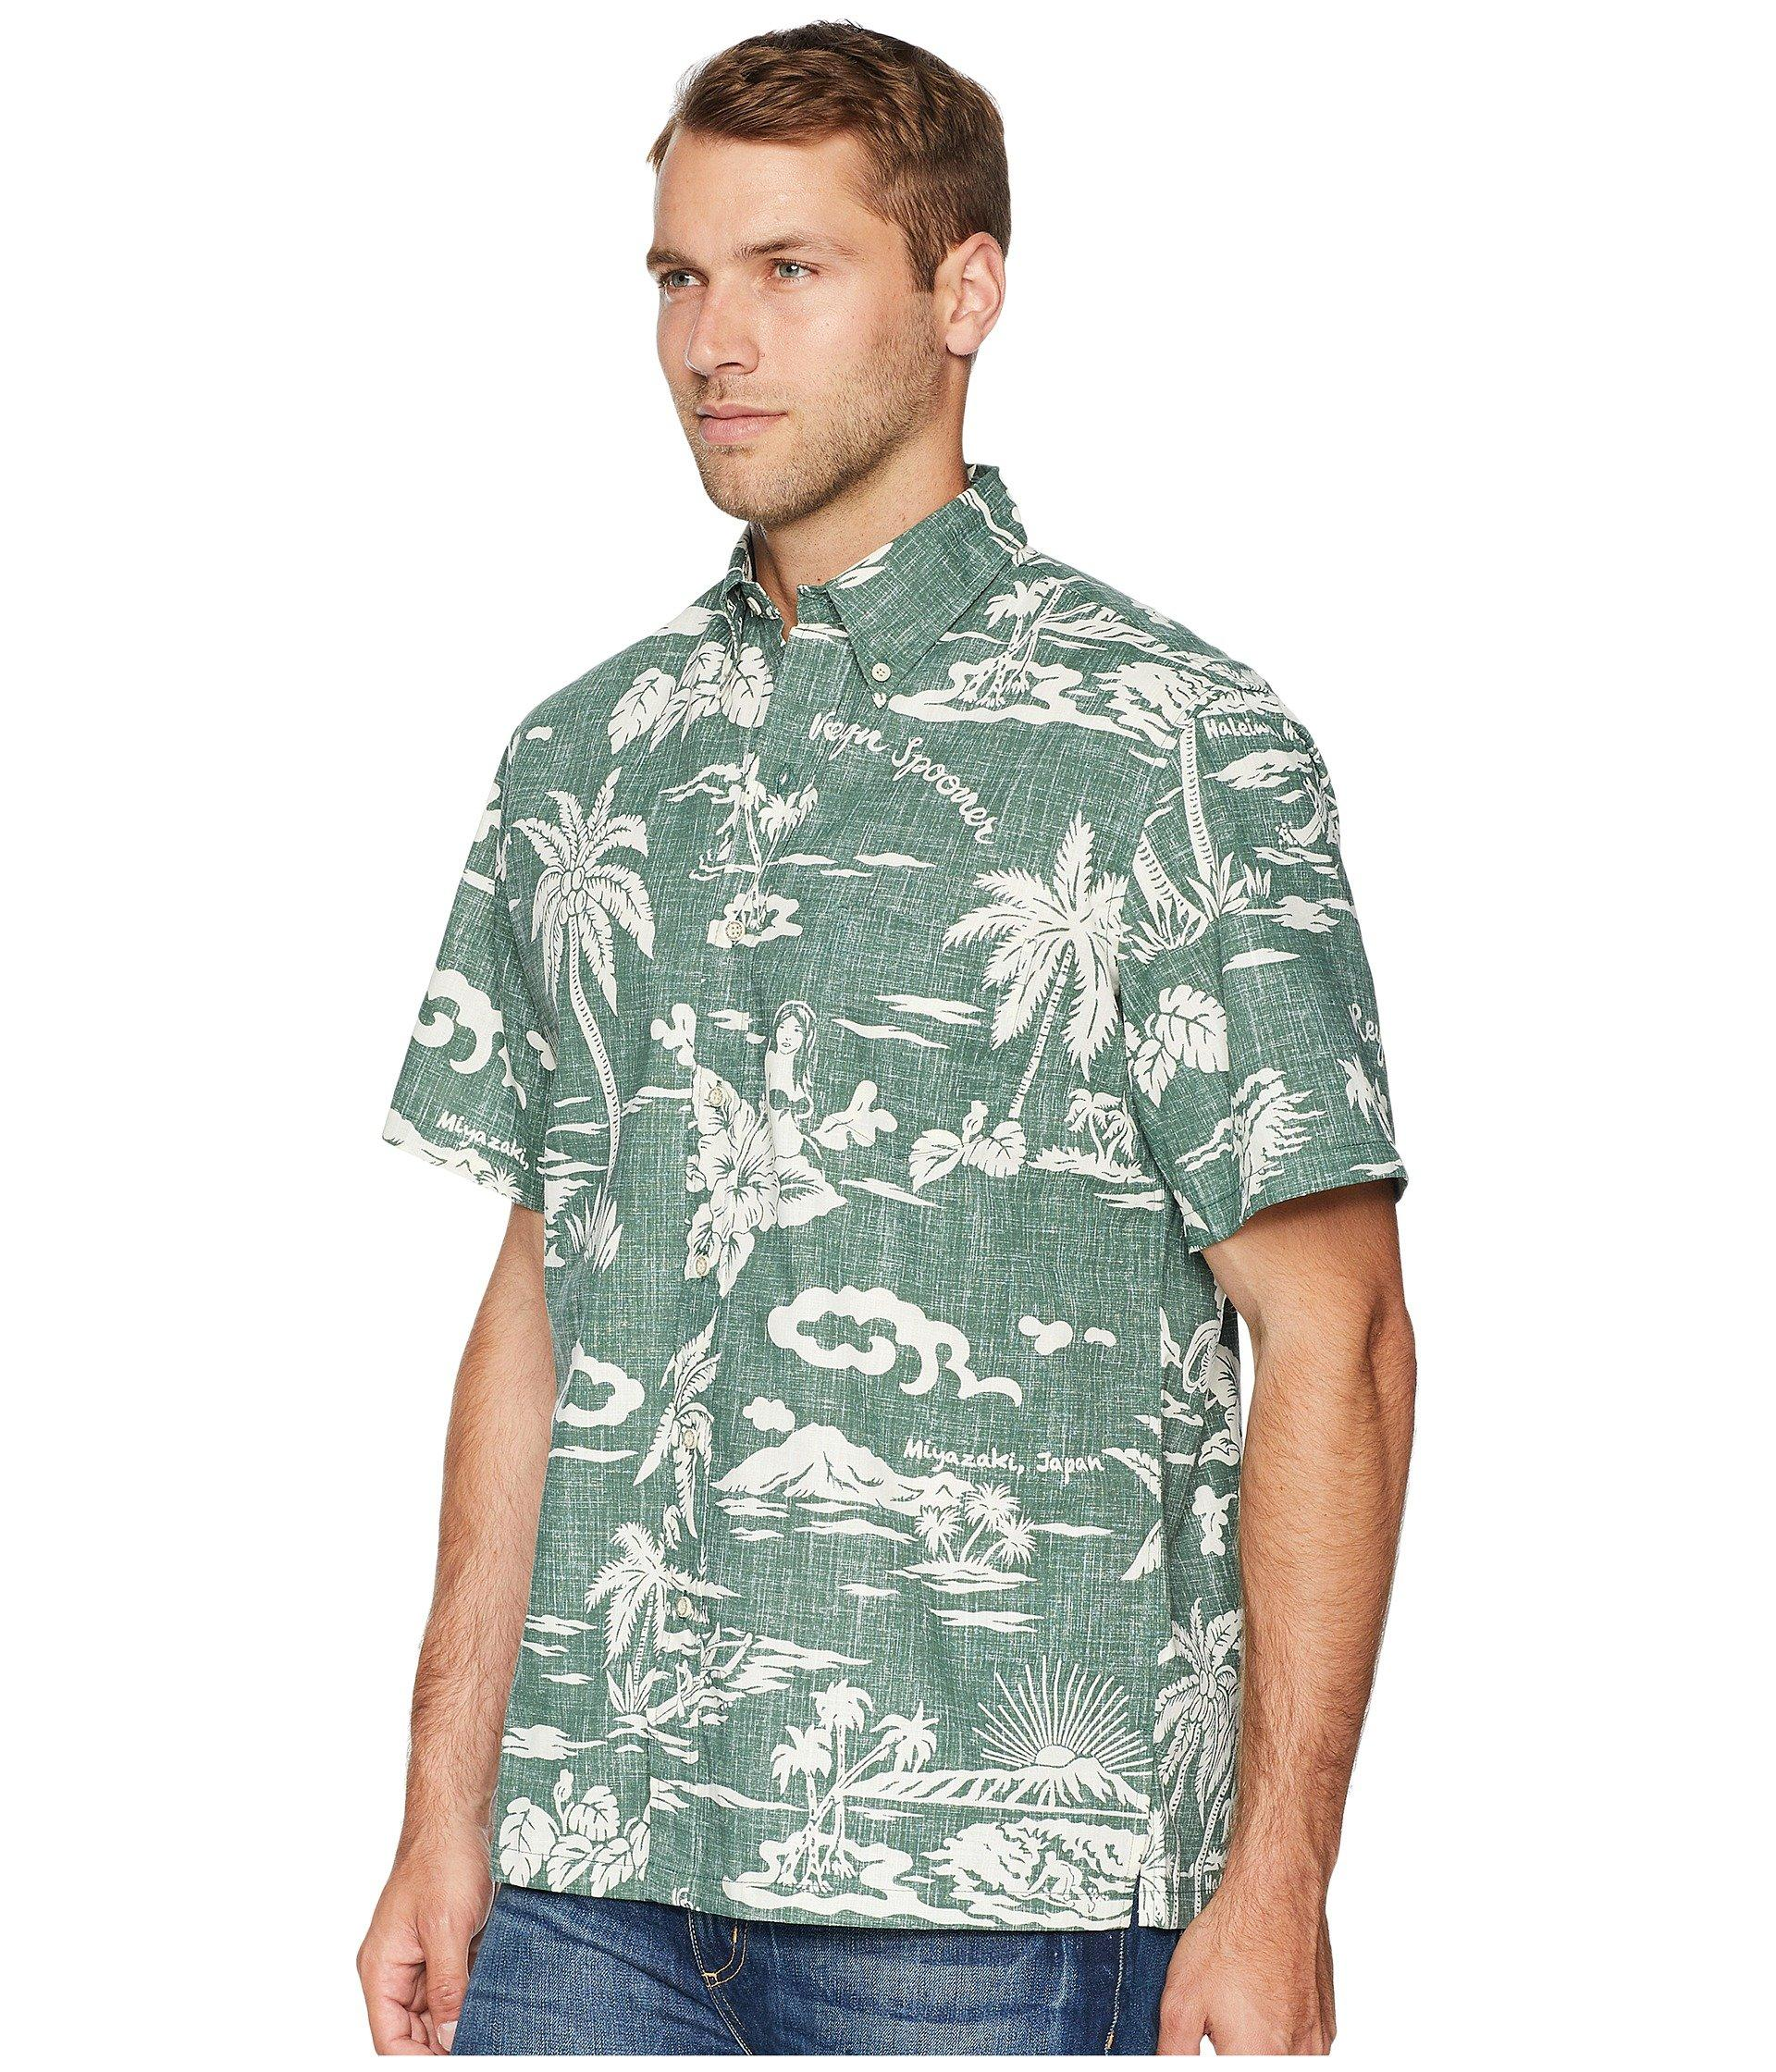 41f19b3e Lyst - Reyn Spooner My Private Isle Classic Fit Aloha Shirt in Green for Men  - Save 36%